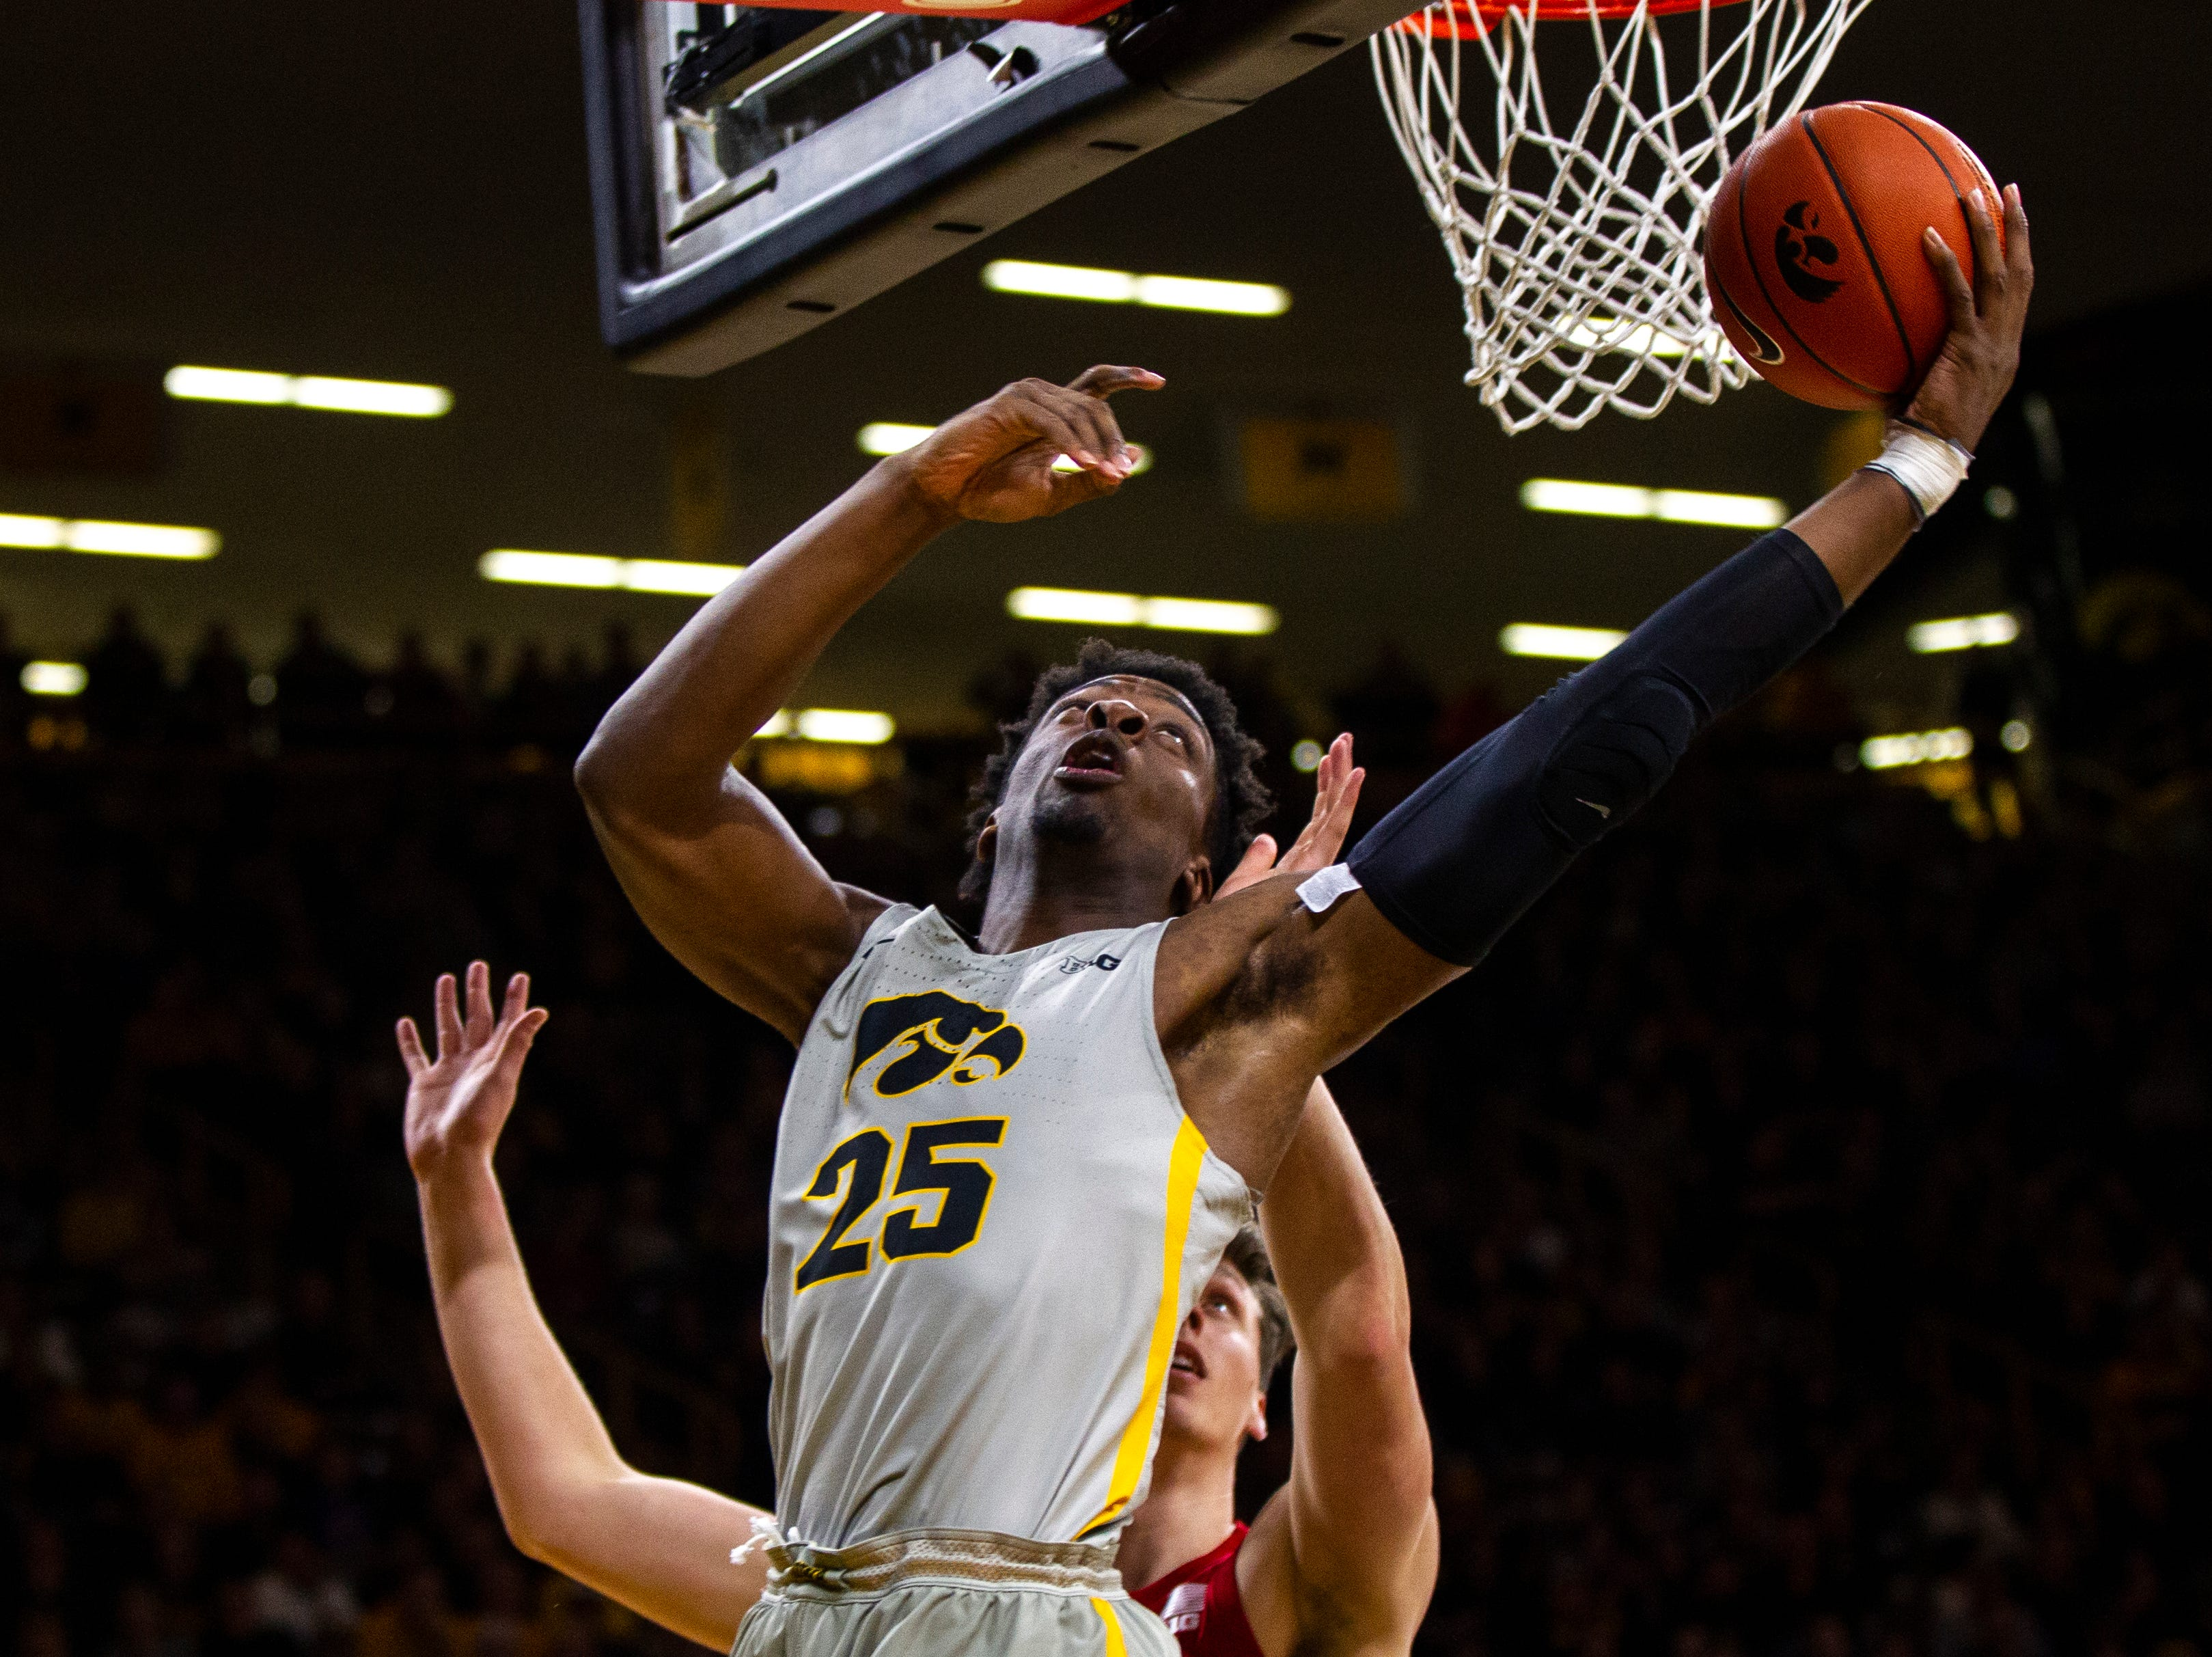 Iowa forward Tyler Cook (25) attempts a basket during a NCAA Big Ten Conference men's basketball game on Sunday, Jan. 6, 2019, at the Carver-Hawkeye Arena in Iowa City, Iowa.